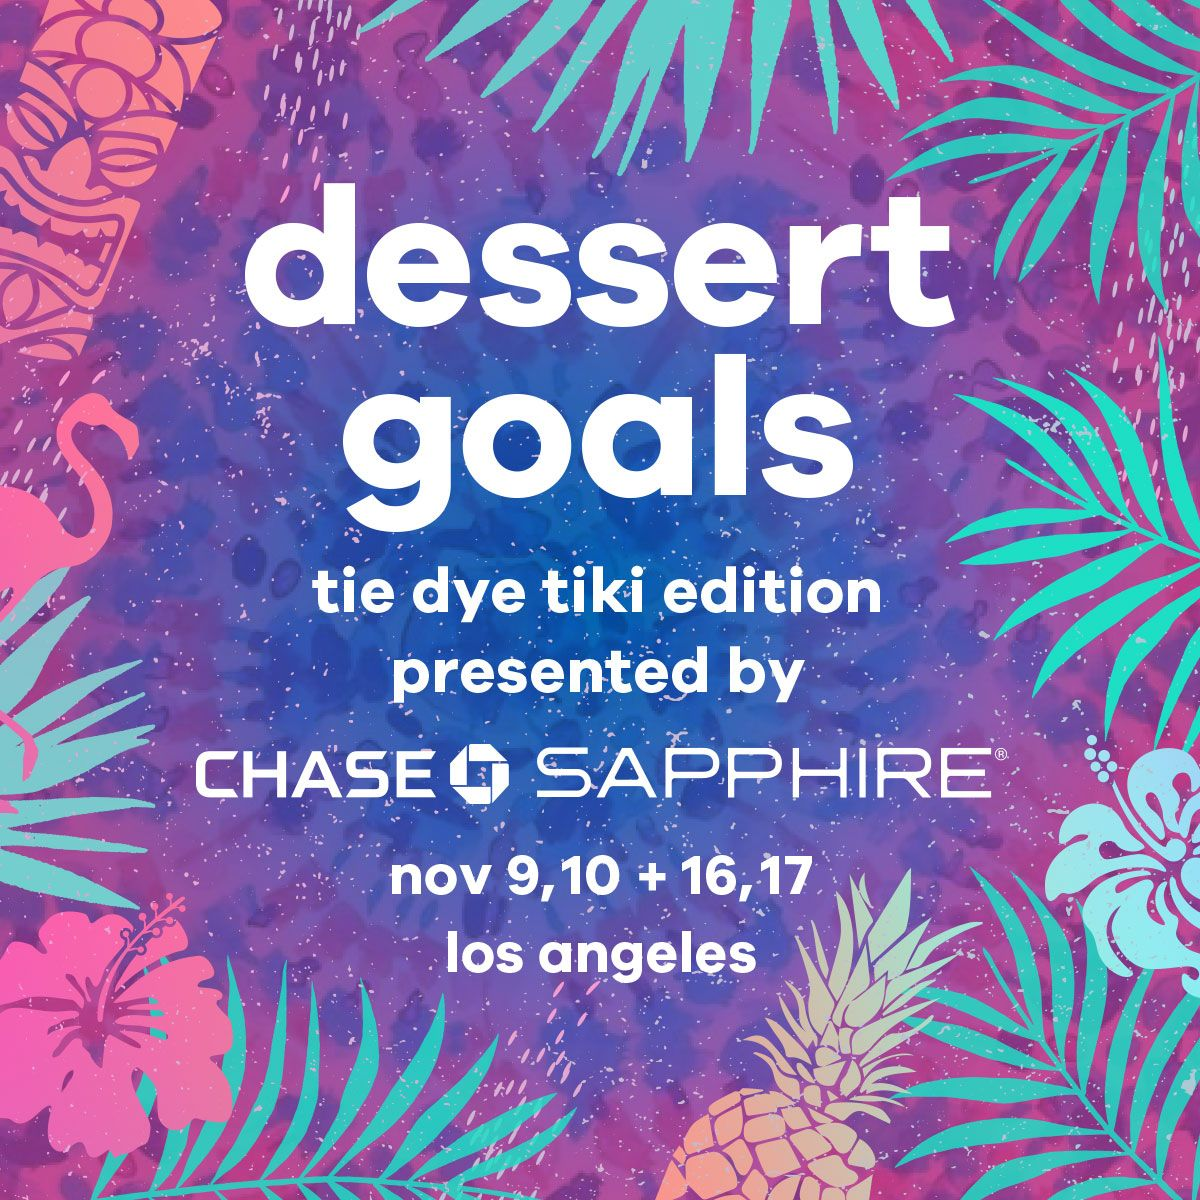 Dessert Goals Returns to Los Angeles for 3rd Year